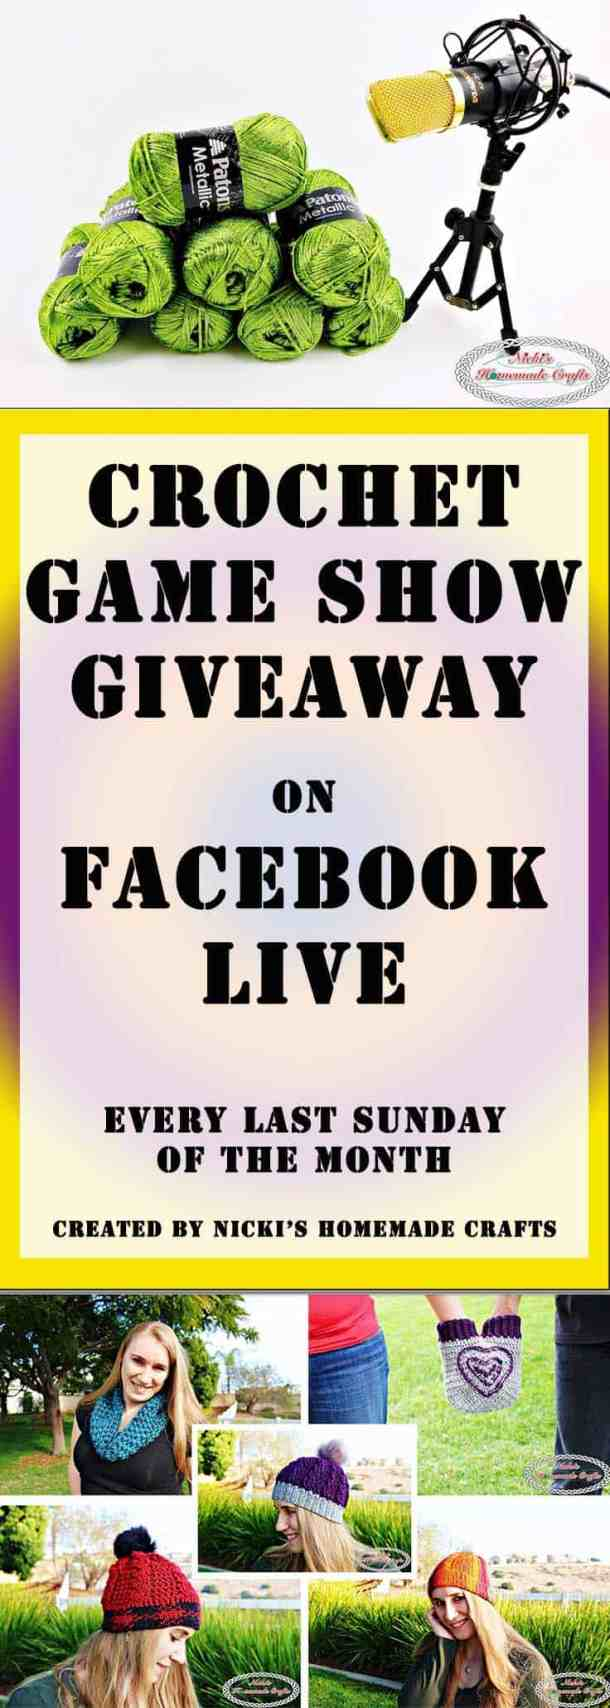 Crochet Game Show Giveaway 5 Pdf Patterns by Nicki's Homemade Crafts #crochet #game #show #giveaway #pattern #pdf #download #diy #diyhomedecor #win #yarn #facebook #live #yellow #green #red #purple #sunset #rainbow #hearts #valentinesday #love